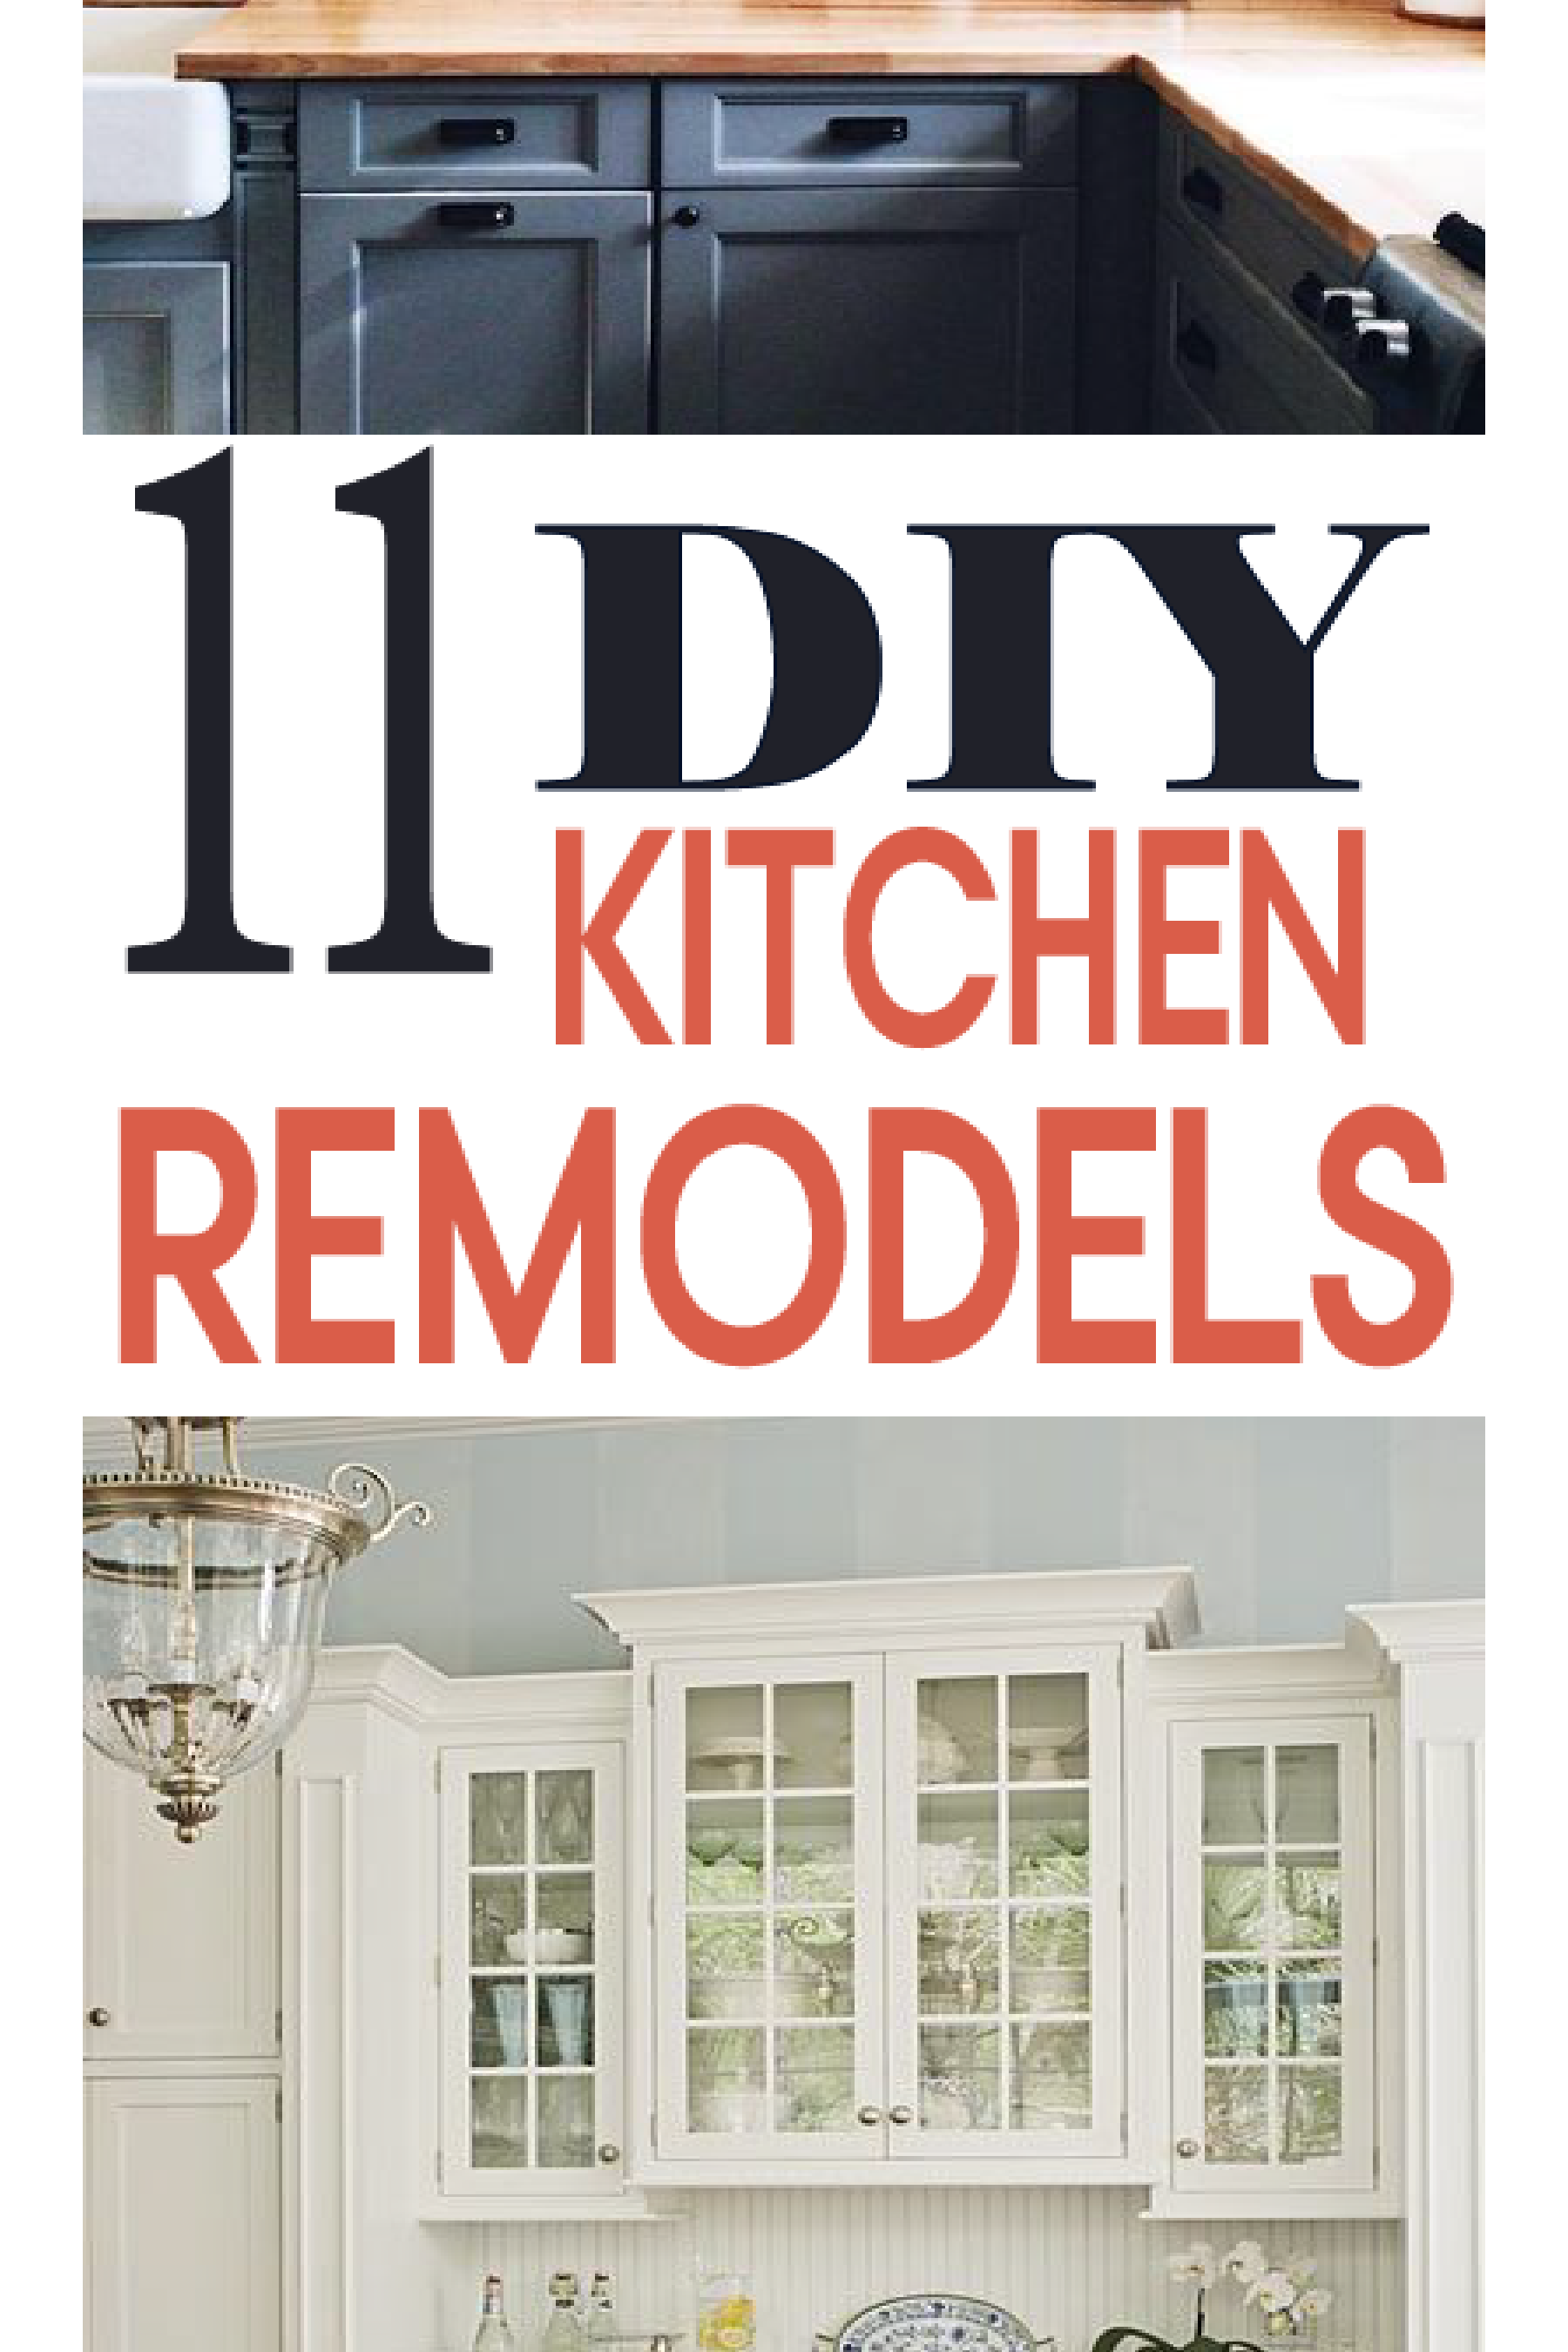 Painted Furniture Ideas | 11 Ways to DIY Kitchen Remodel ...